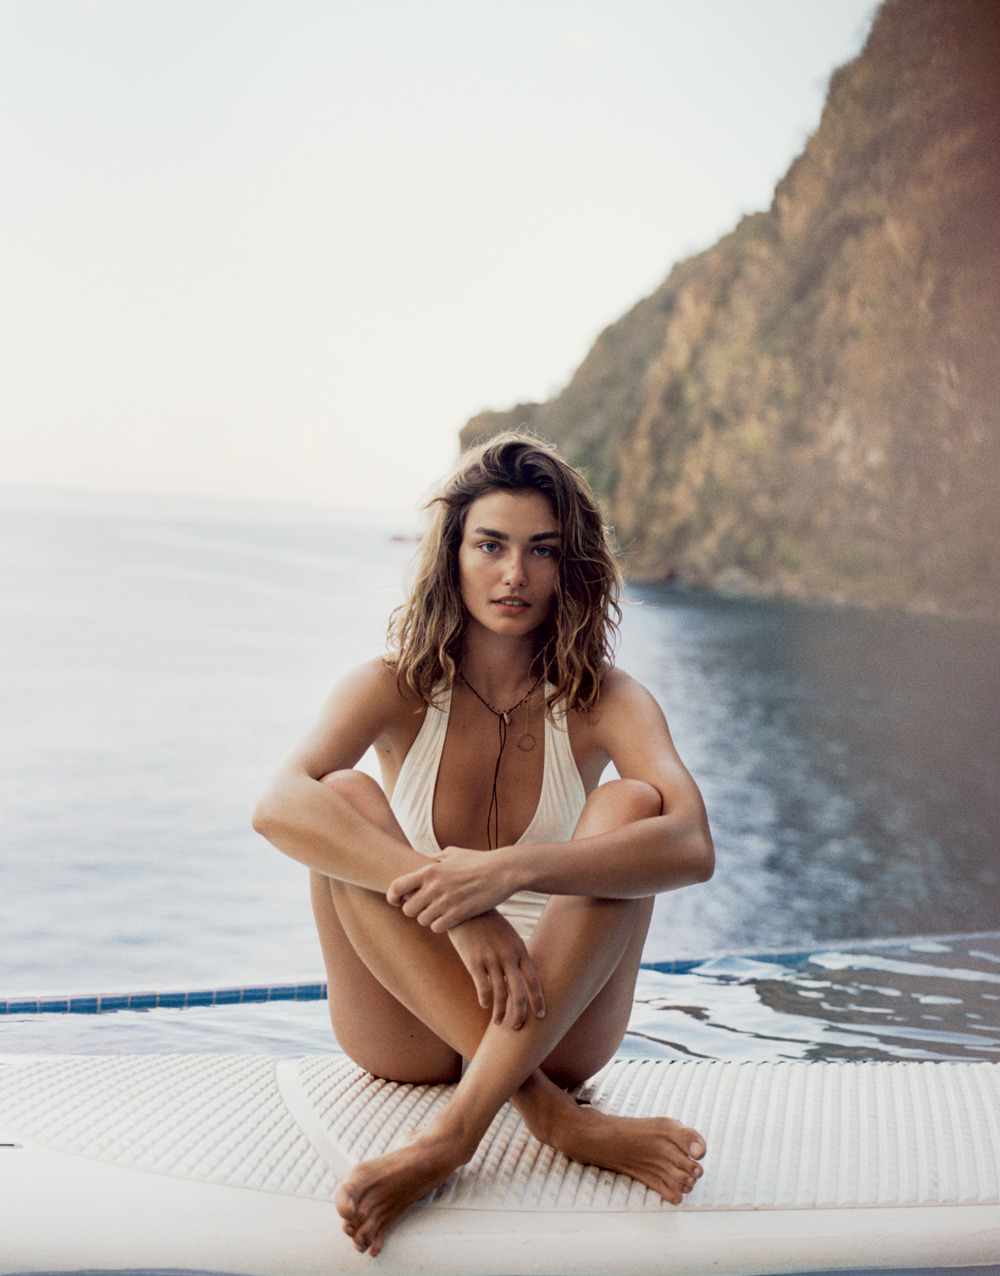 6eb01-andreea-diaconu-by-cass-bird-for-porter-magazine-summer-escape-2015-3.jpg